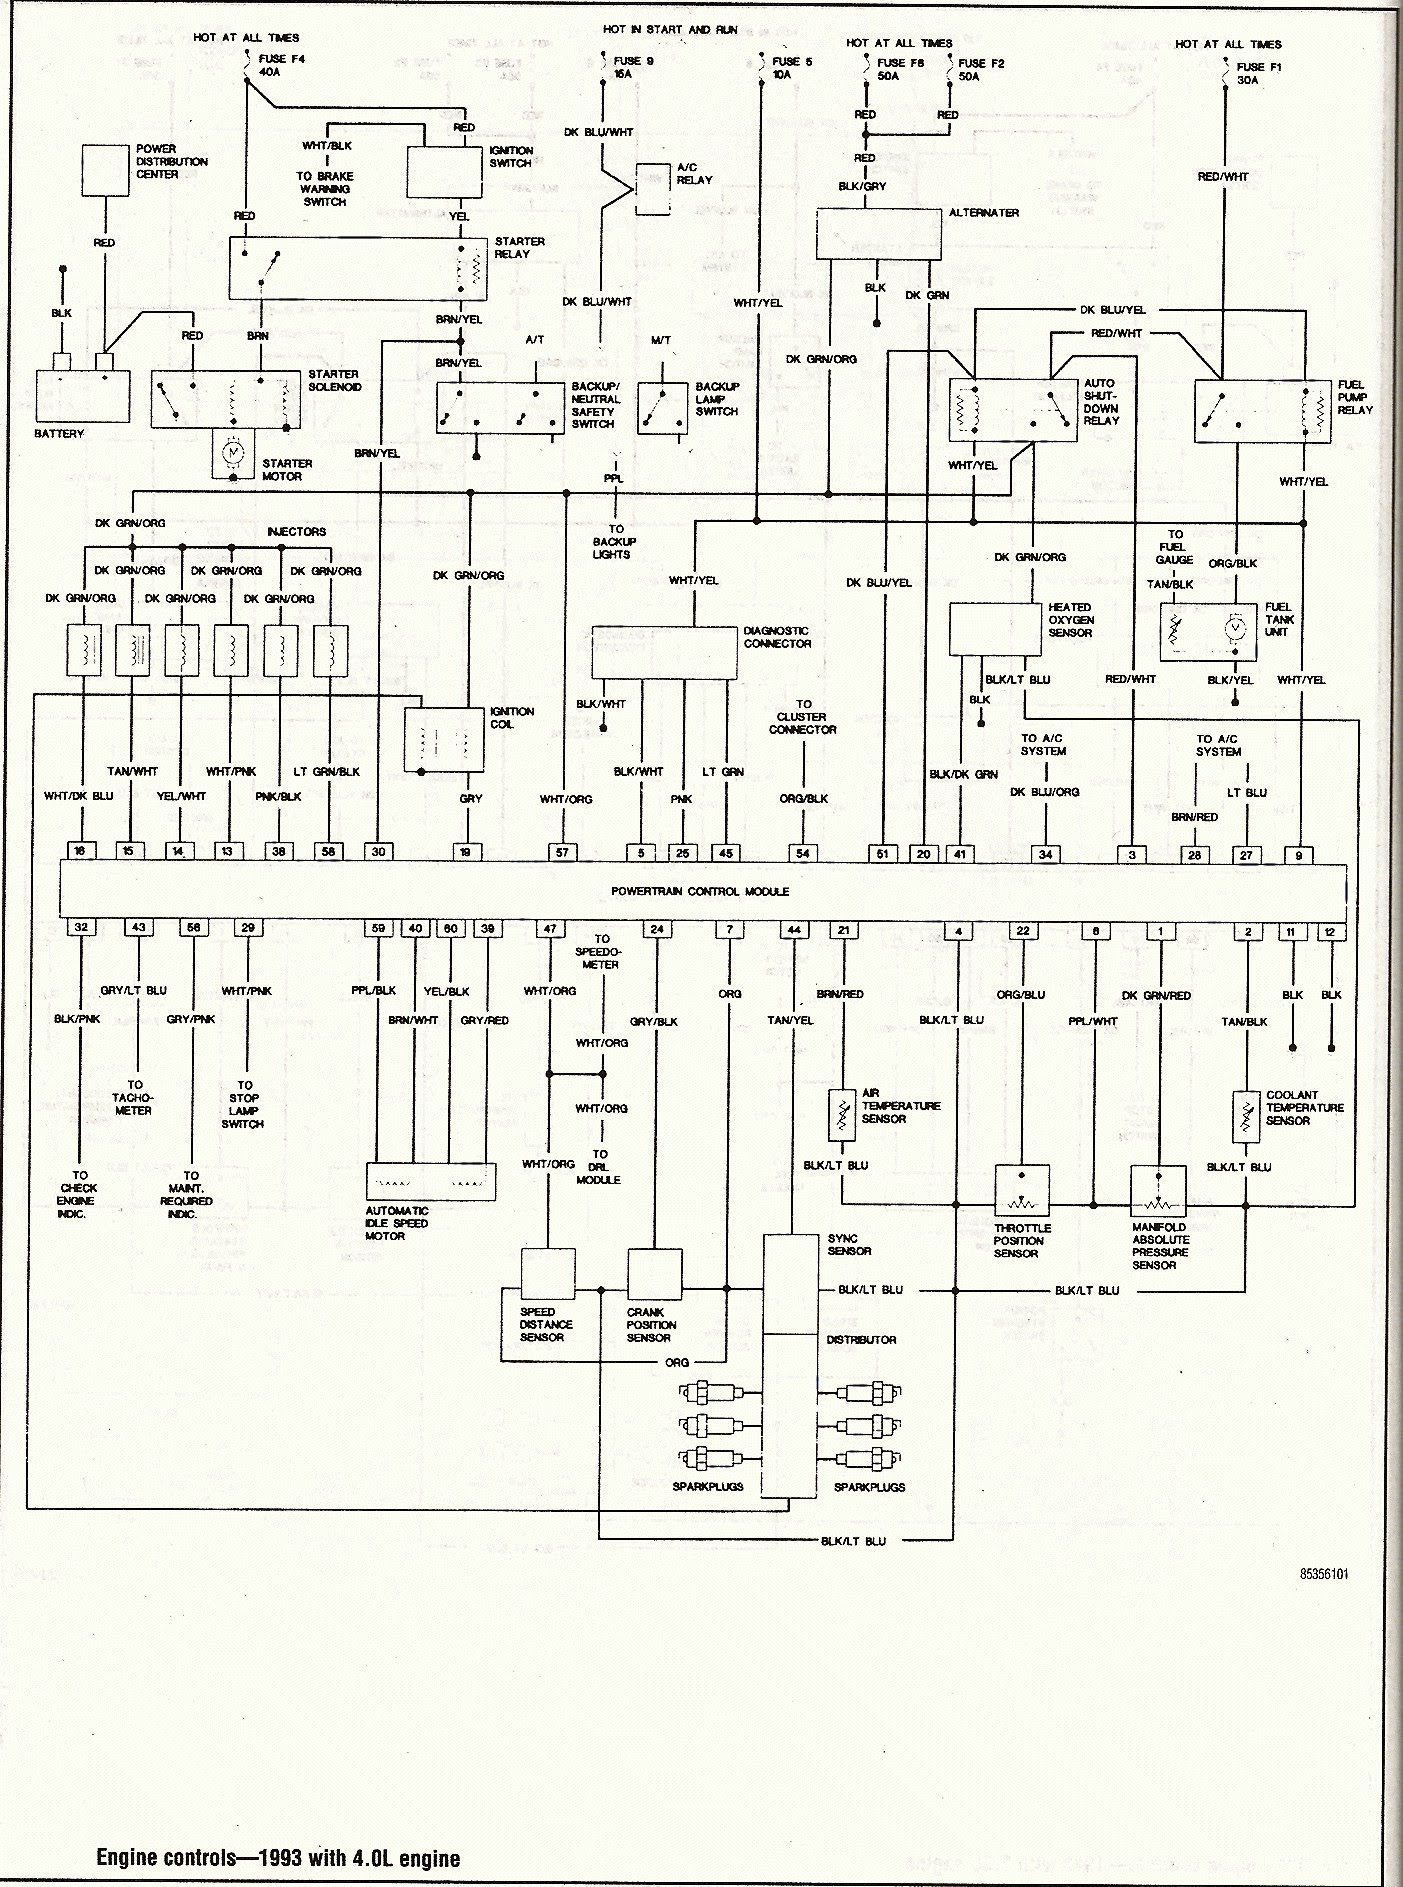 Diagram 1998 Jeep Wrangler Wiring Diagram Full Version Hd Quality Wiring Diagram Toro As4a Fr